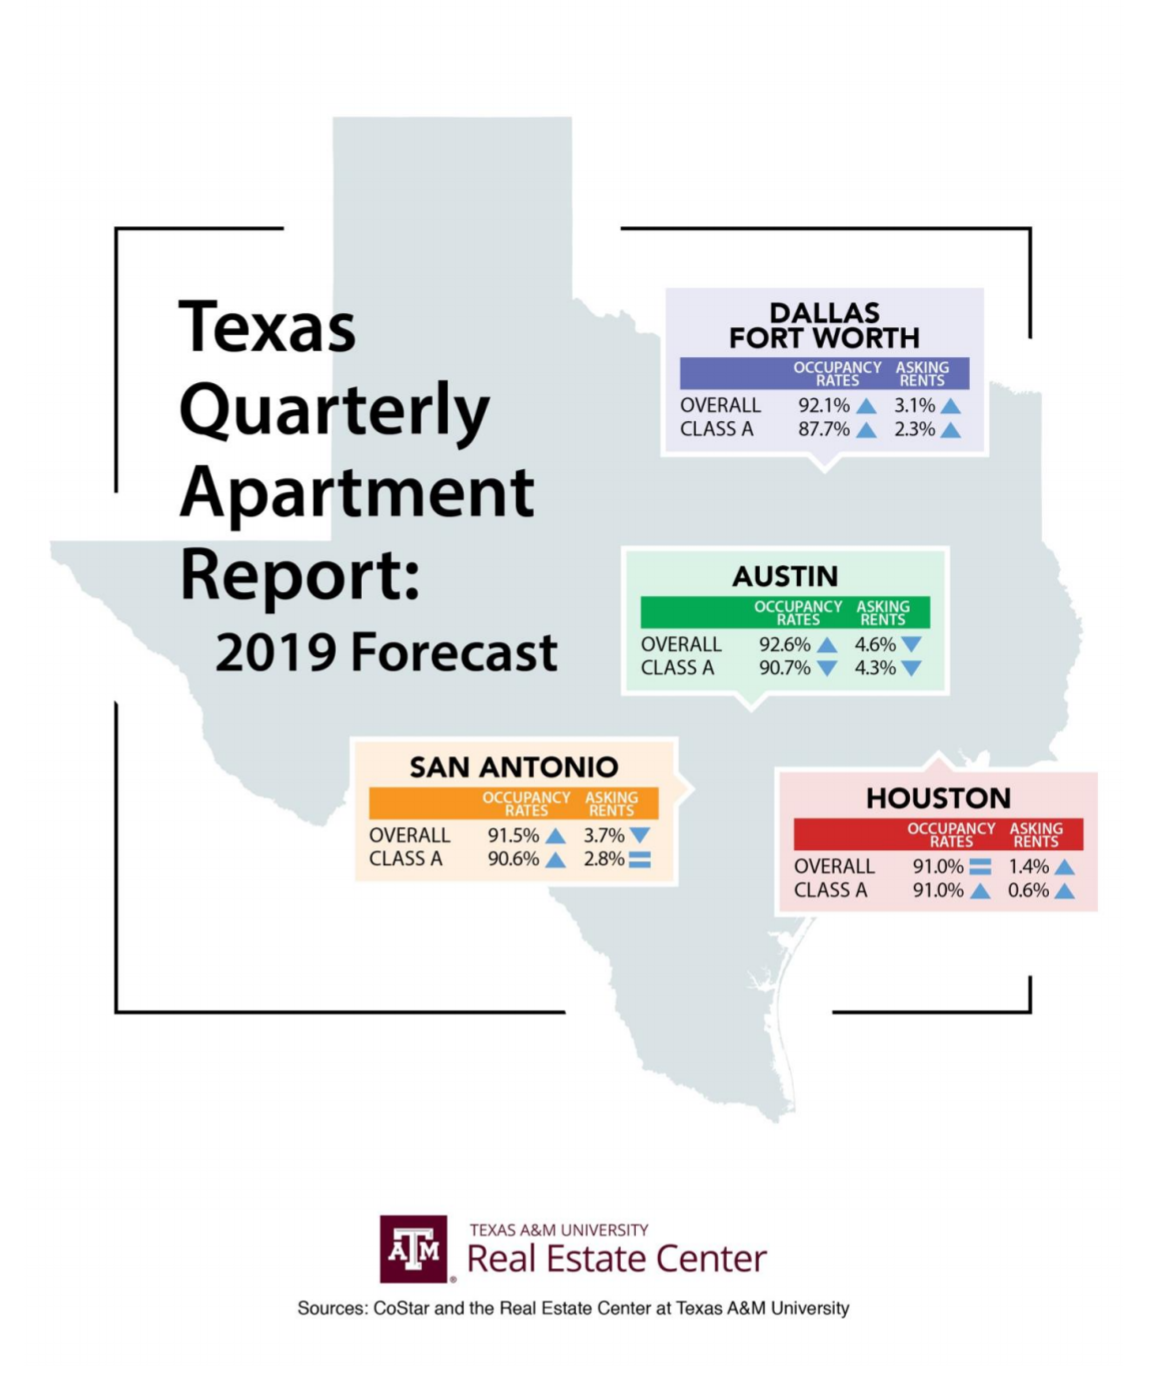 Map showing Texas Quarterly Apartment Report's 2019 forecast for DFW, Austin, San Antonio, and Houston